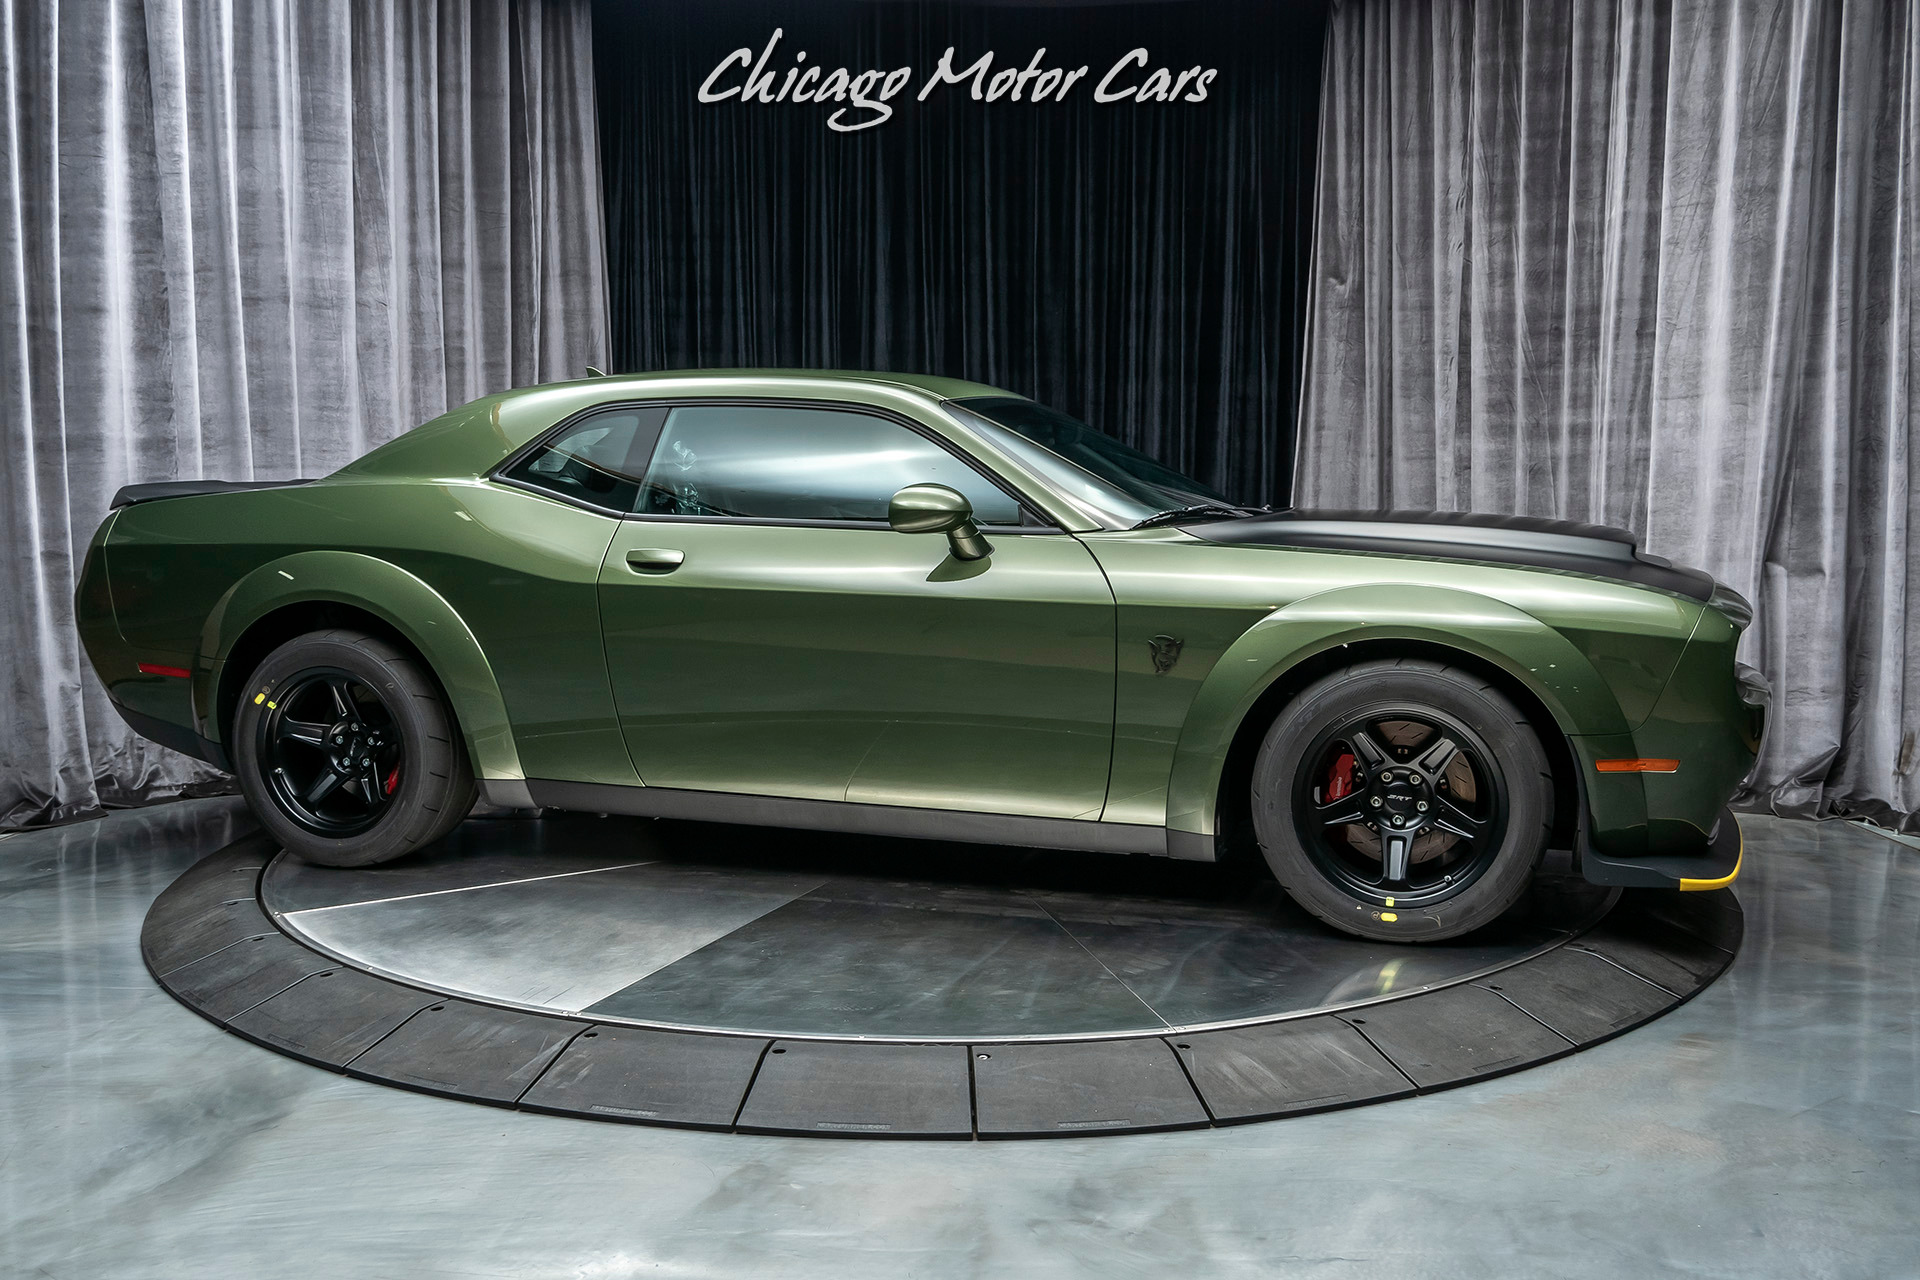 Used-2018-Dodge-Challenger-SRT-Demon-ONLY-37-MILES-F8-GREEN-DEMON-CRATE